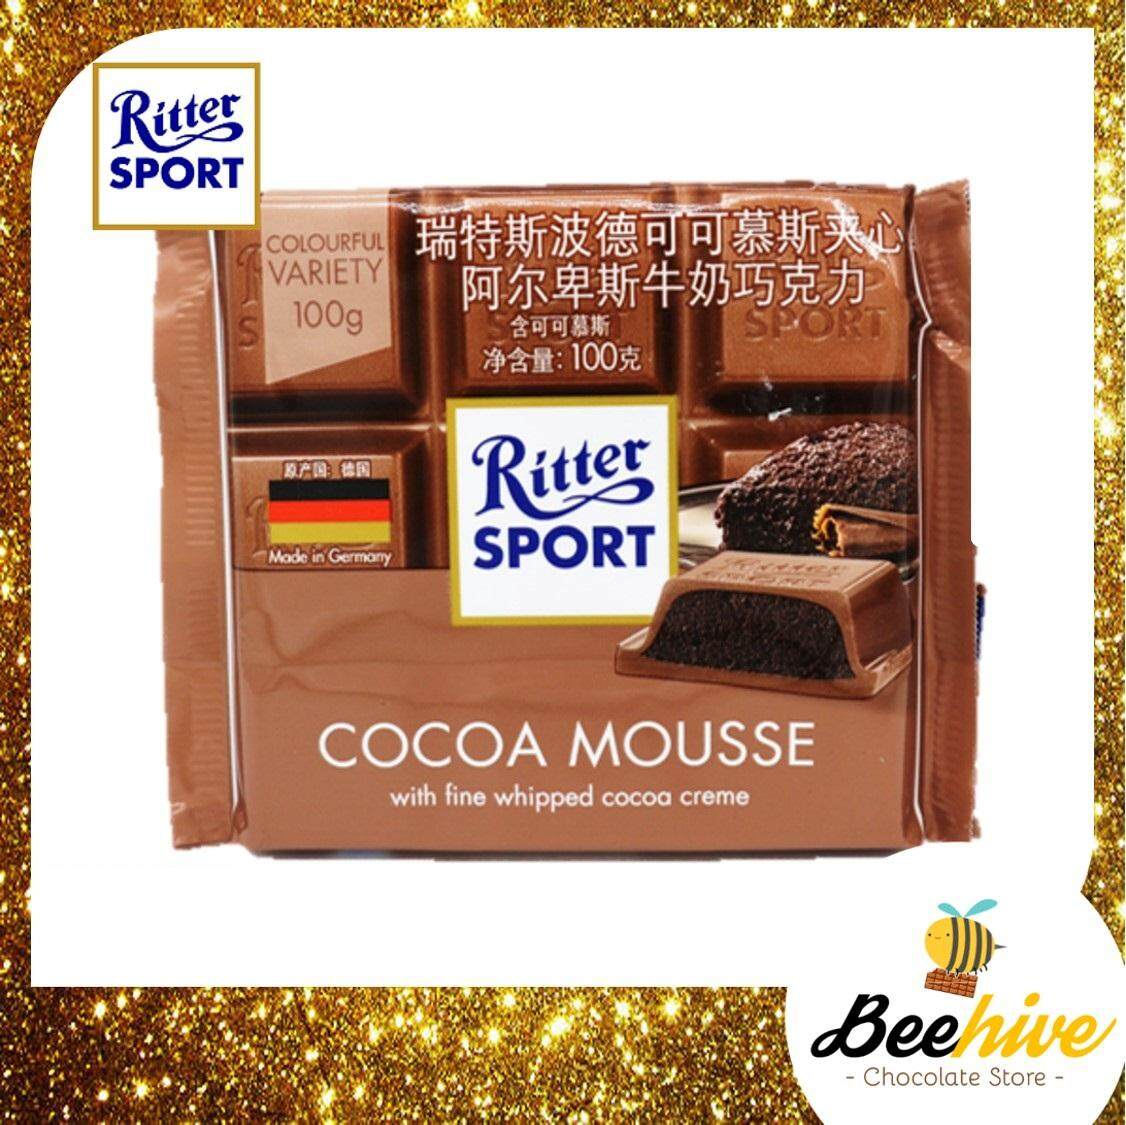 Ritter Sport Cocoa Mousse Chocolate 100g [Ice Cold Packs Included]